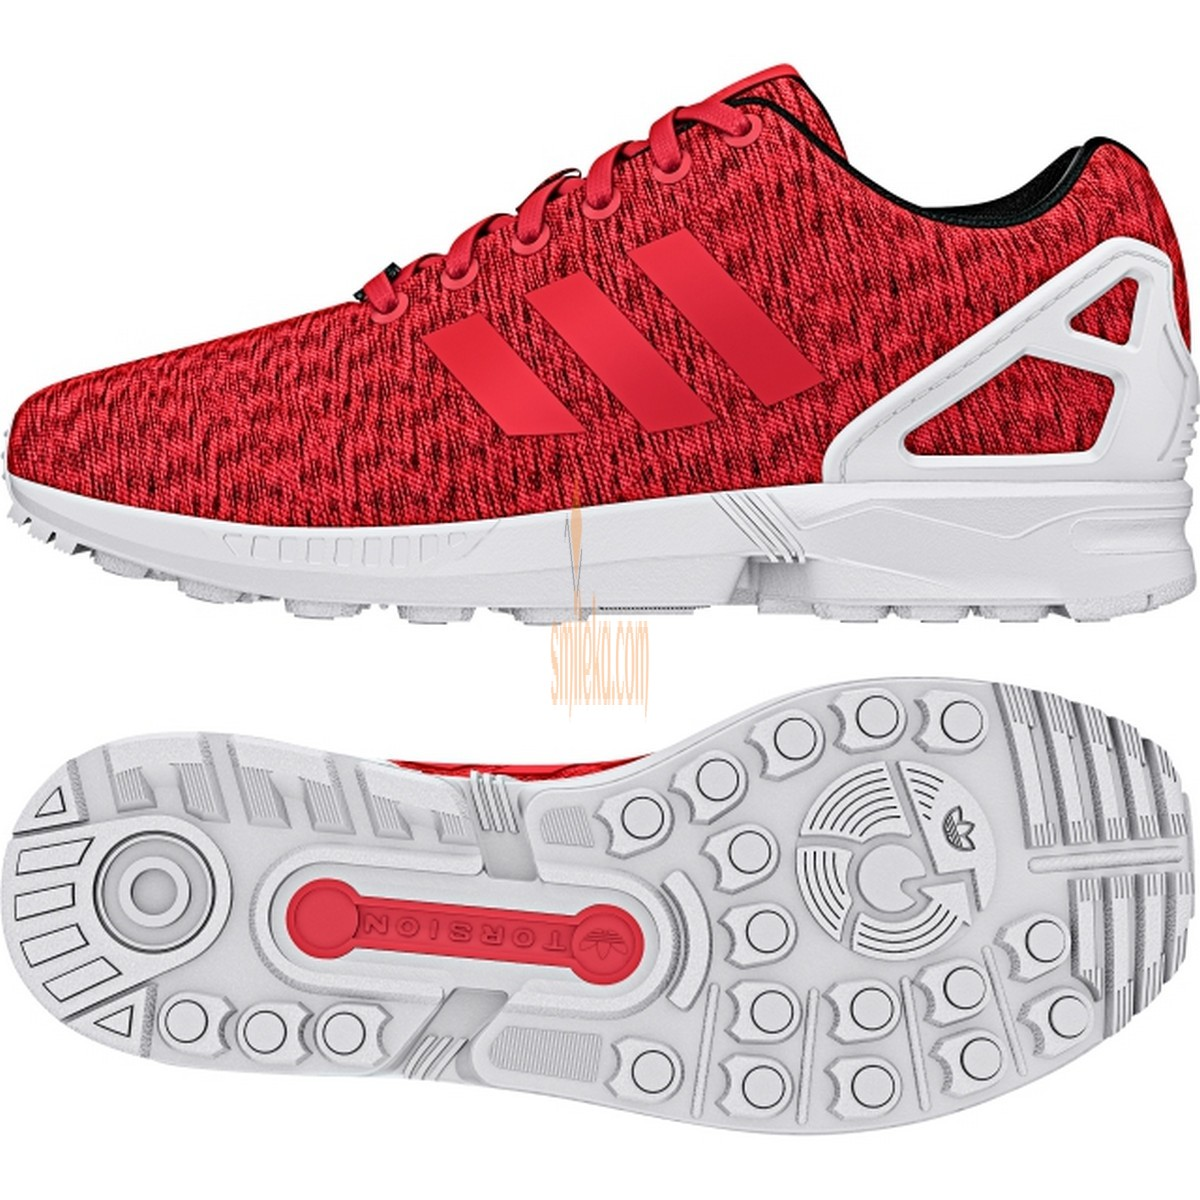 56fe7b462a4ca adidas zx flux shoes core black shock red white